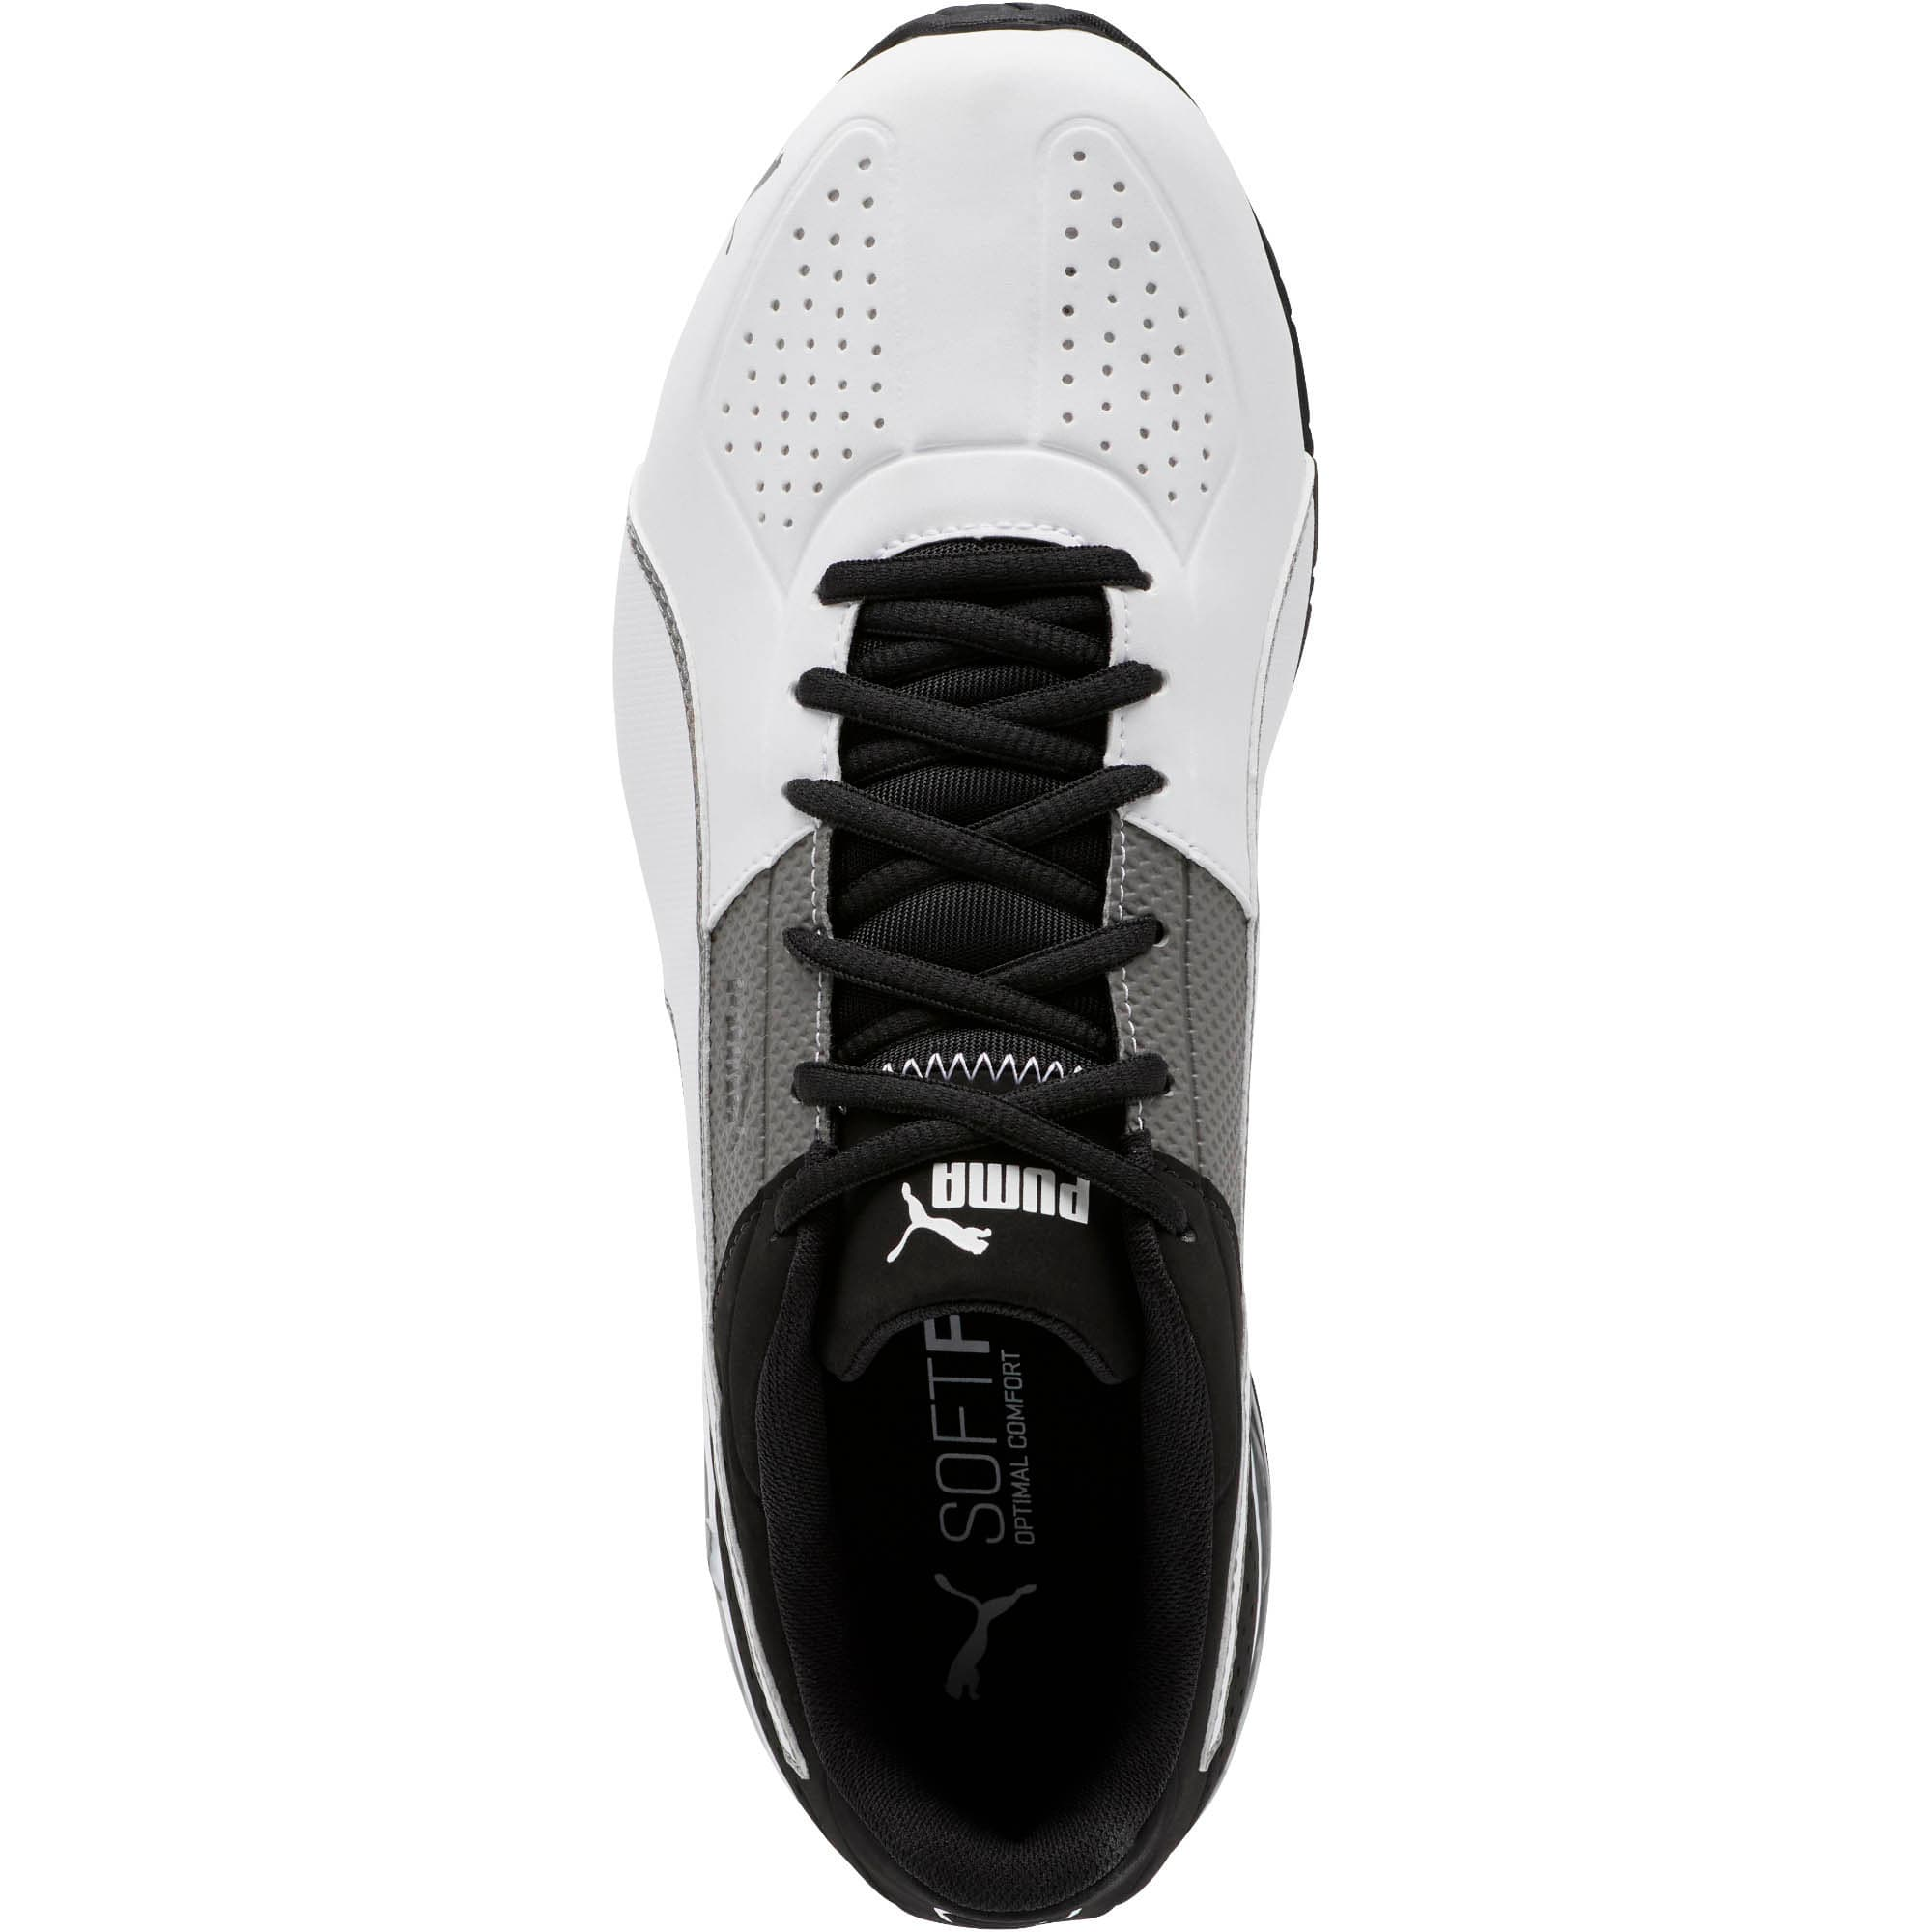 Thumbnail 5 of CELL Surin 2 Matte Men's Training Shoes, Charcoal Gray-Puma White, medium